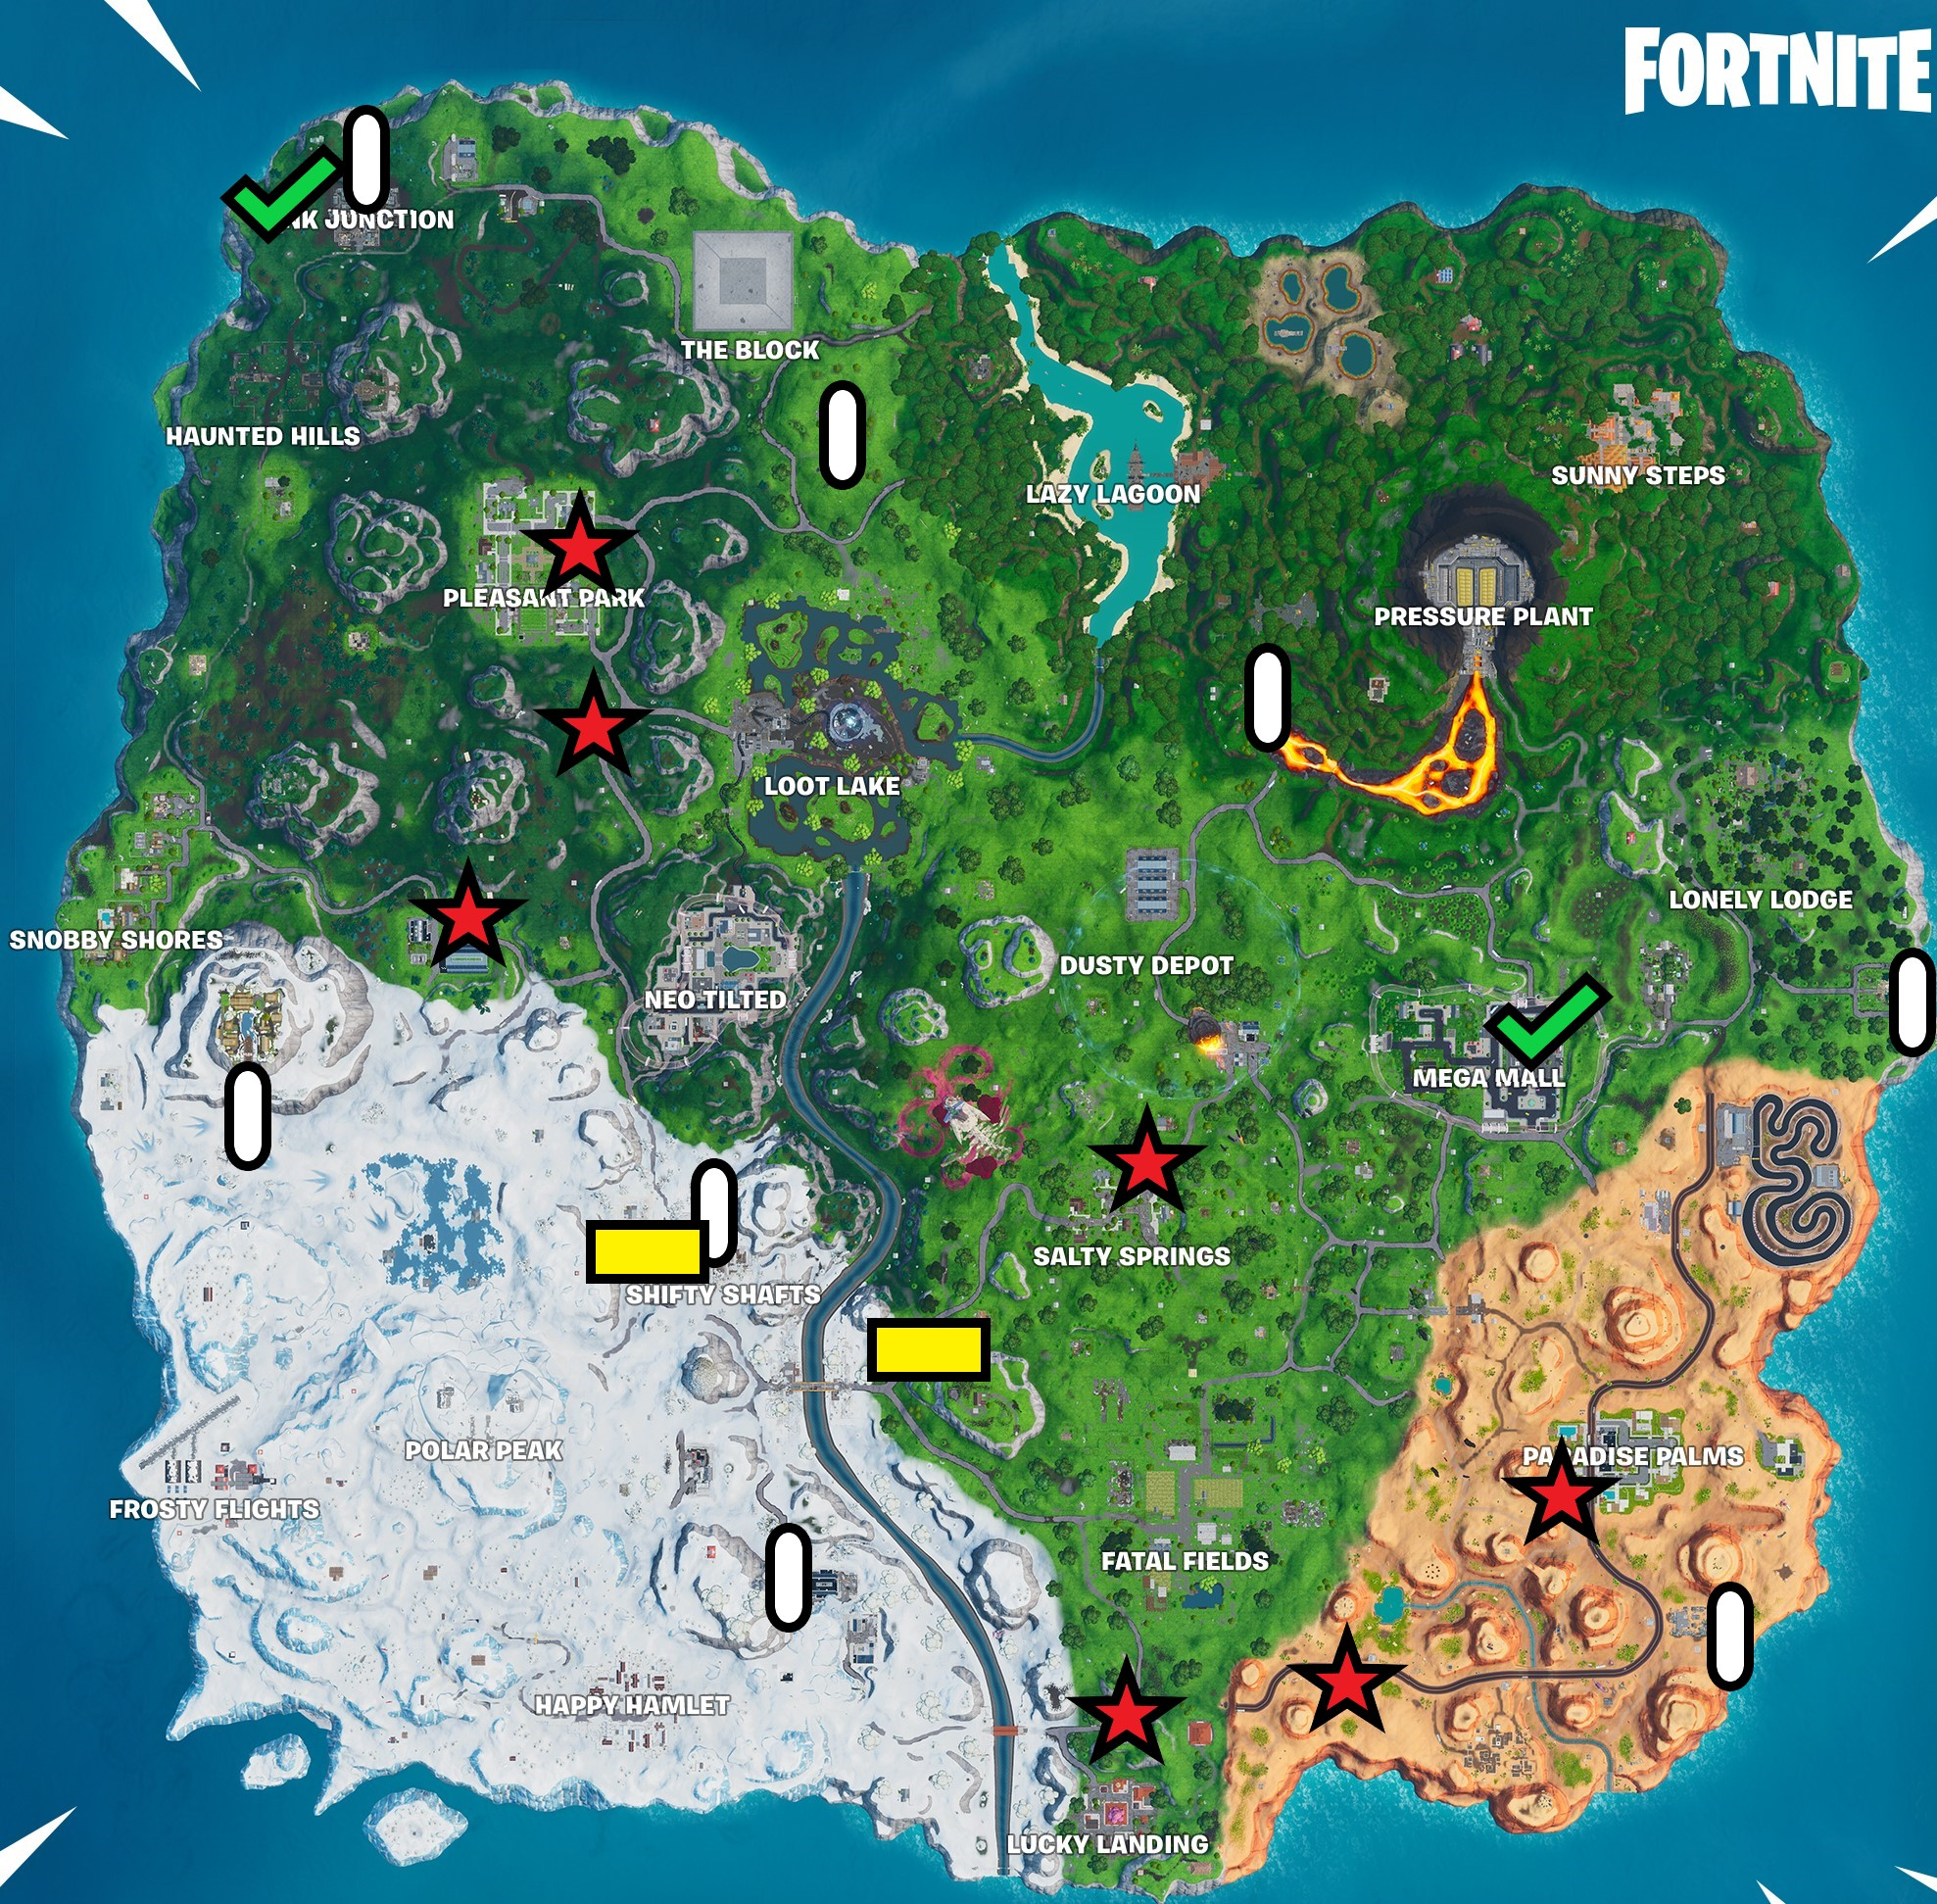 season 10 week 2 missions cheat sheet, map, locations